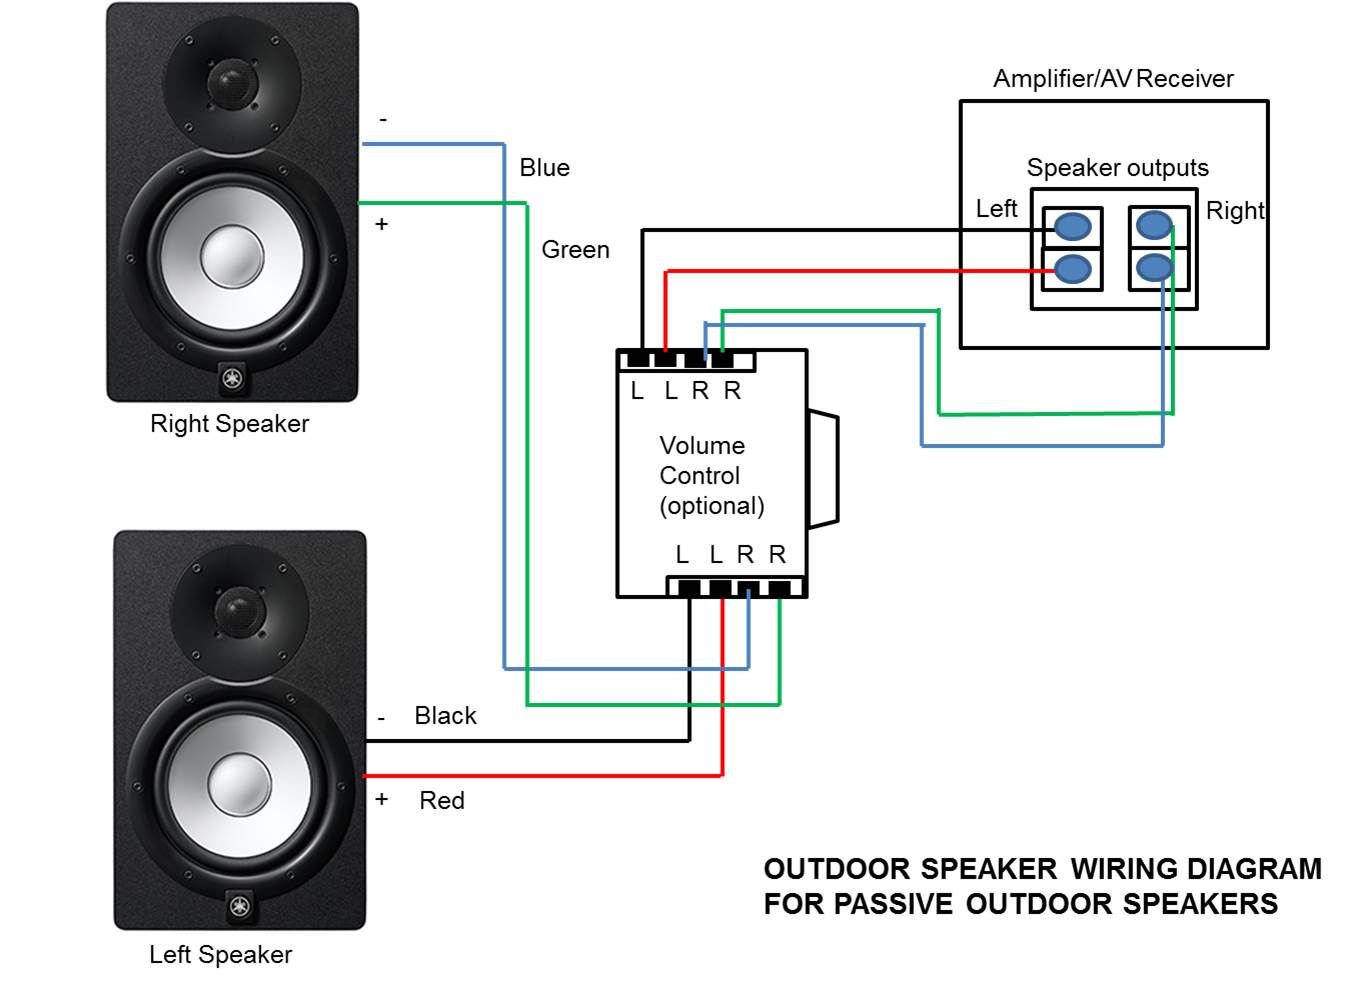 Outdoor Speaker Wiring Diagram